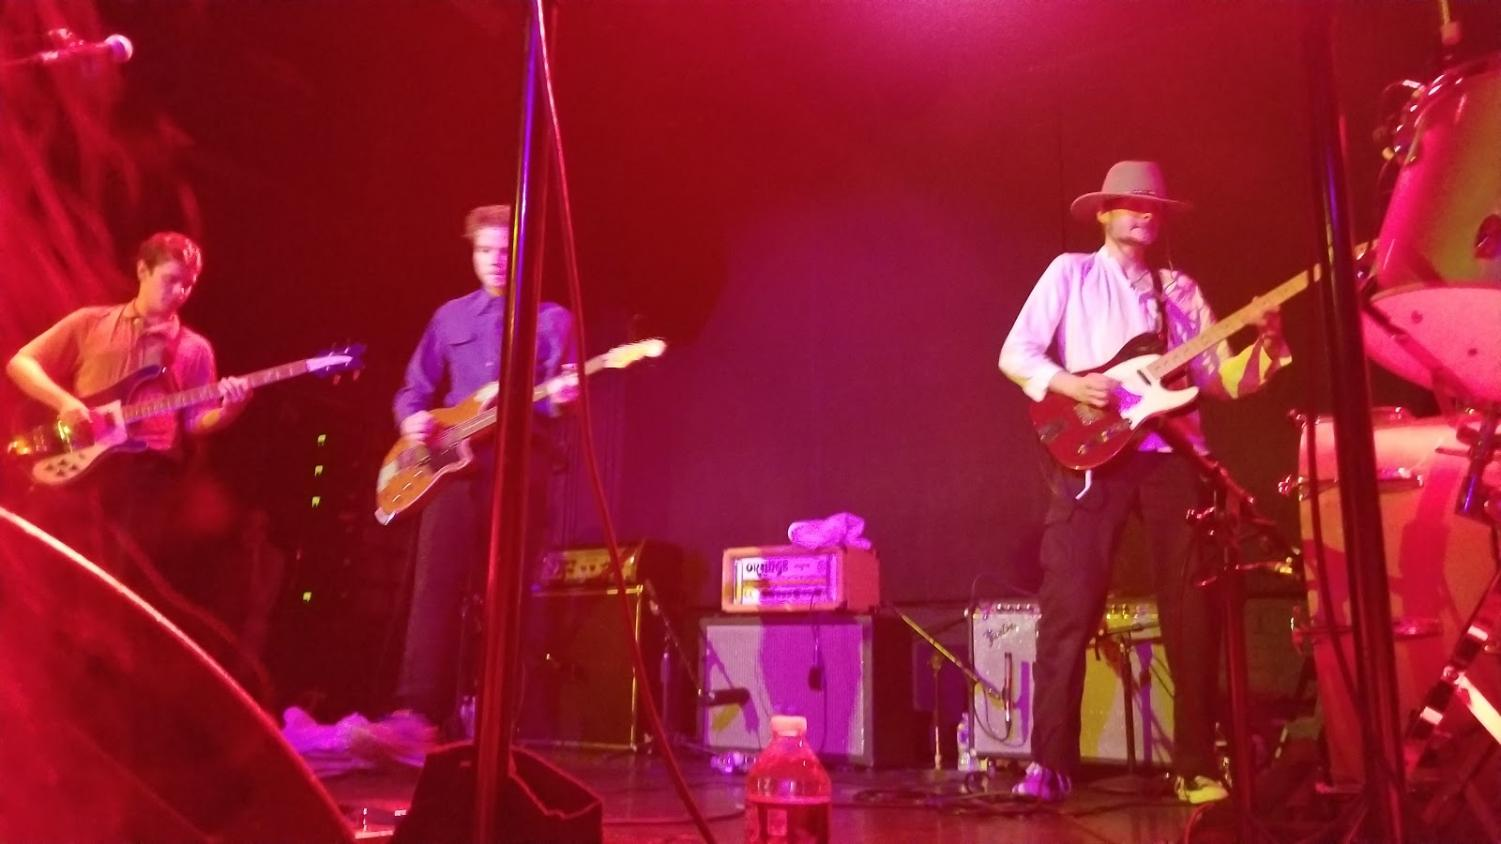 The enigmatic band played back-to-back concerts in NYC this past month, to equally estranged and enthralled audiences.